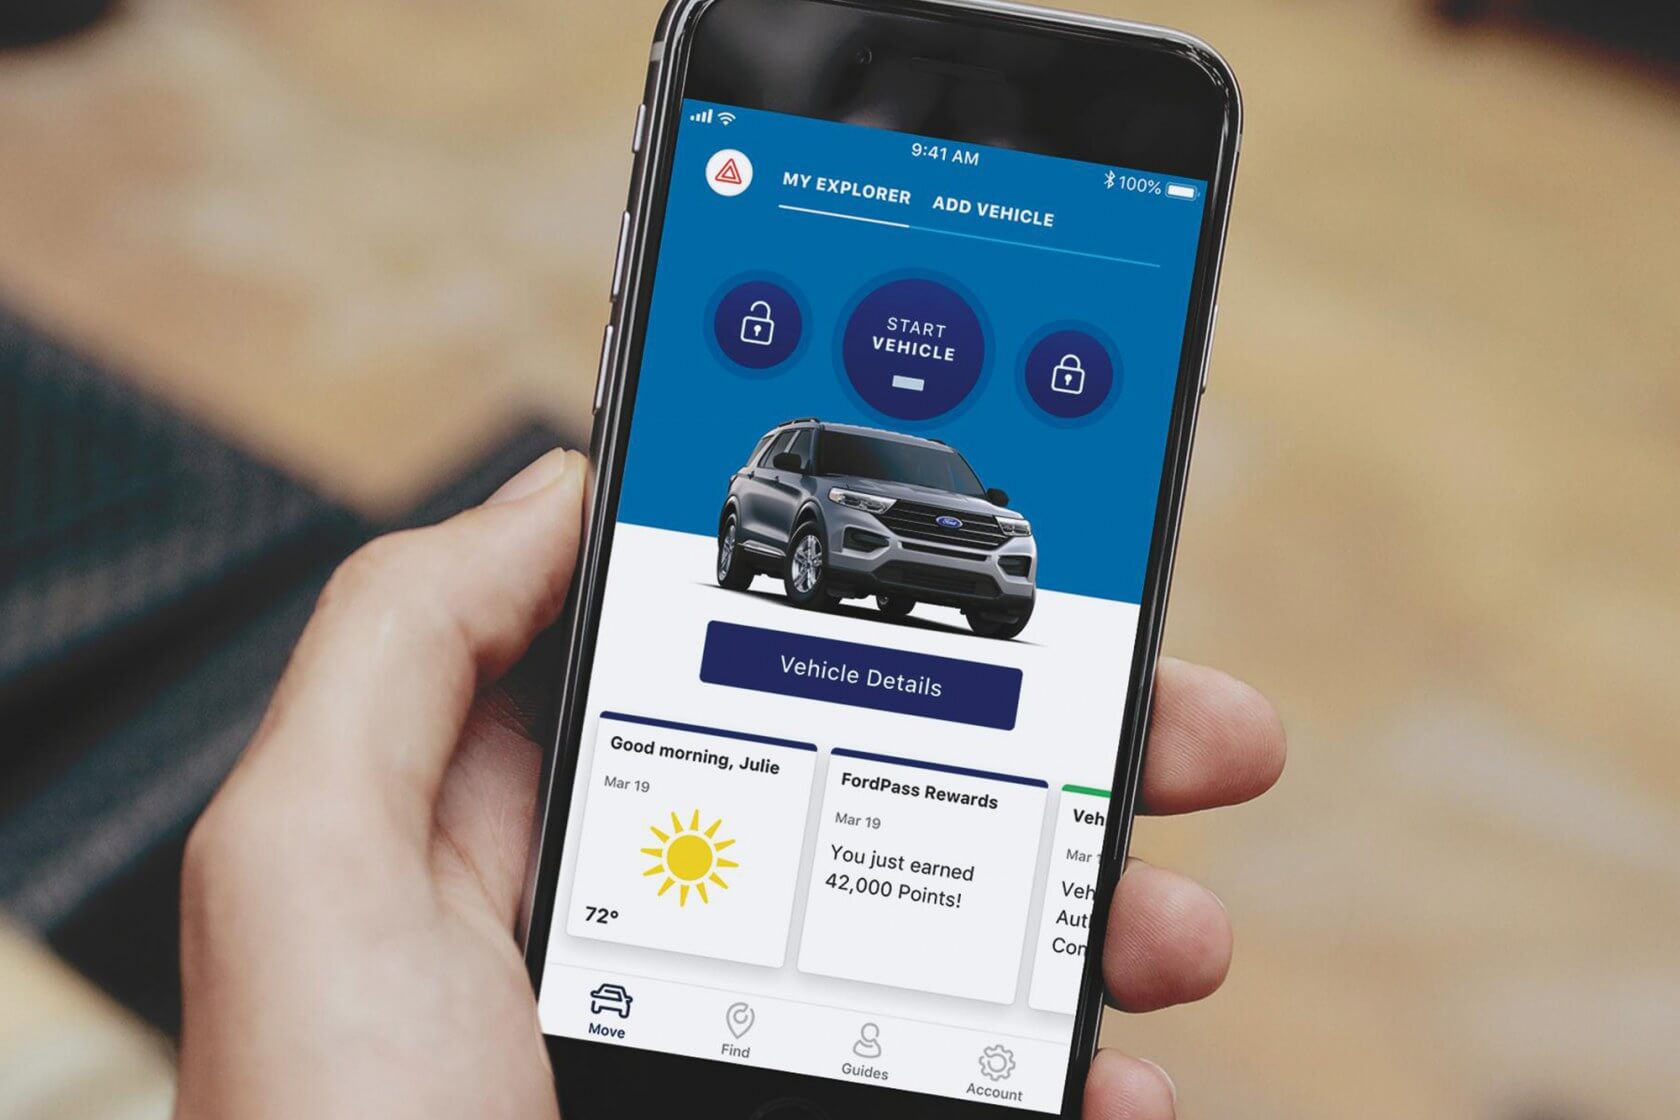 Man is still able to remotely control Ford rental five months after returning it